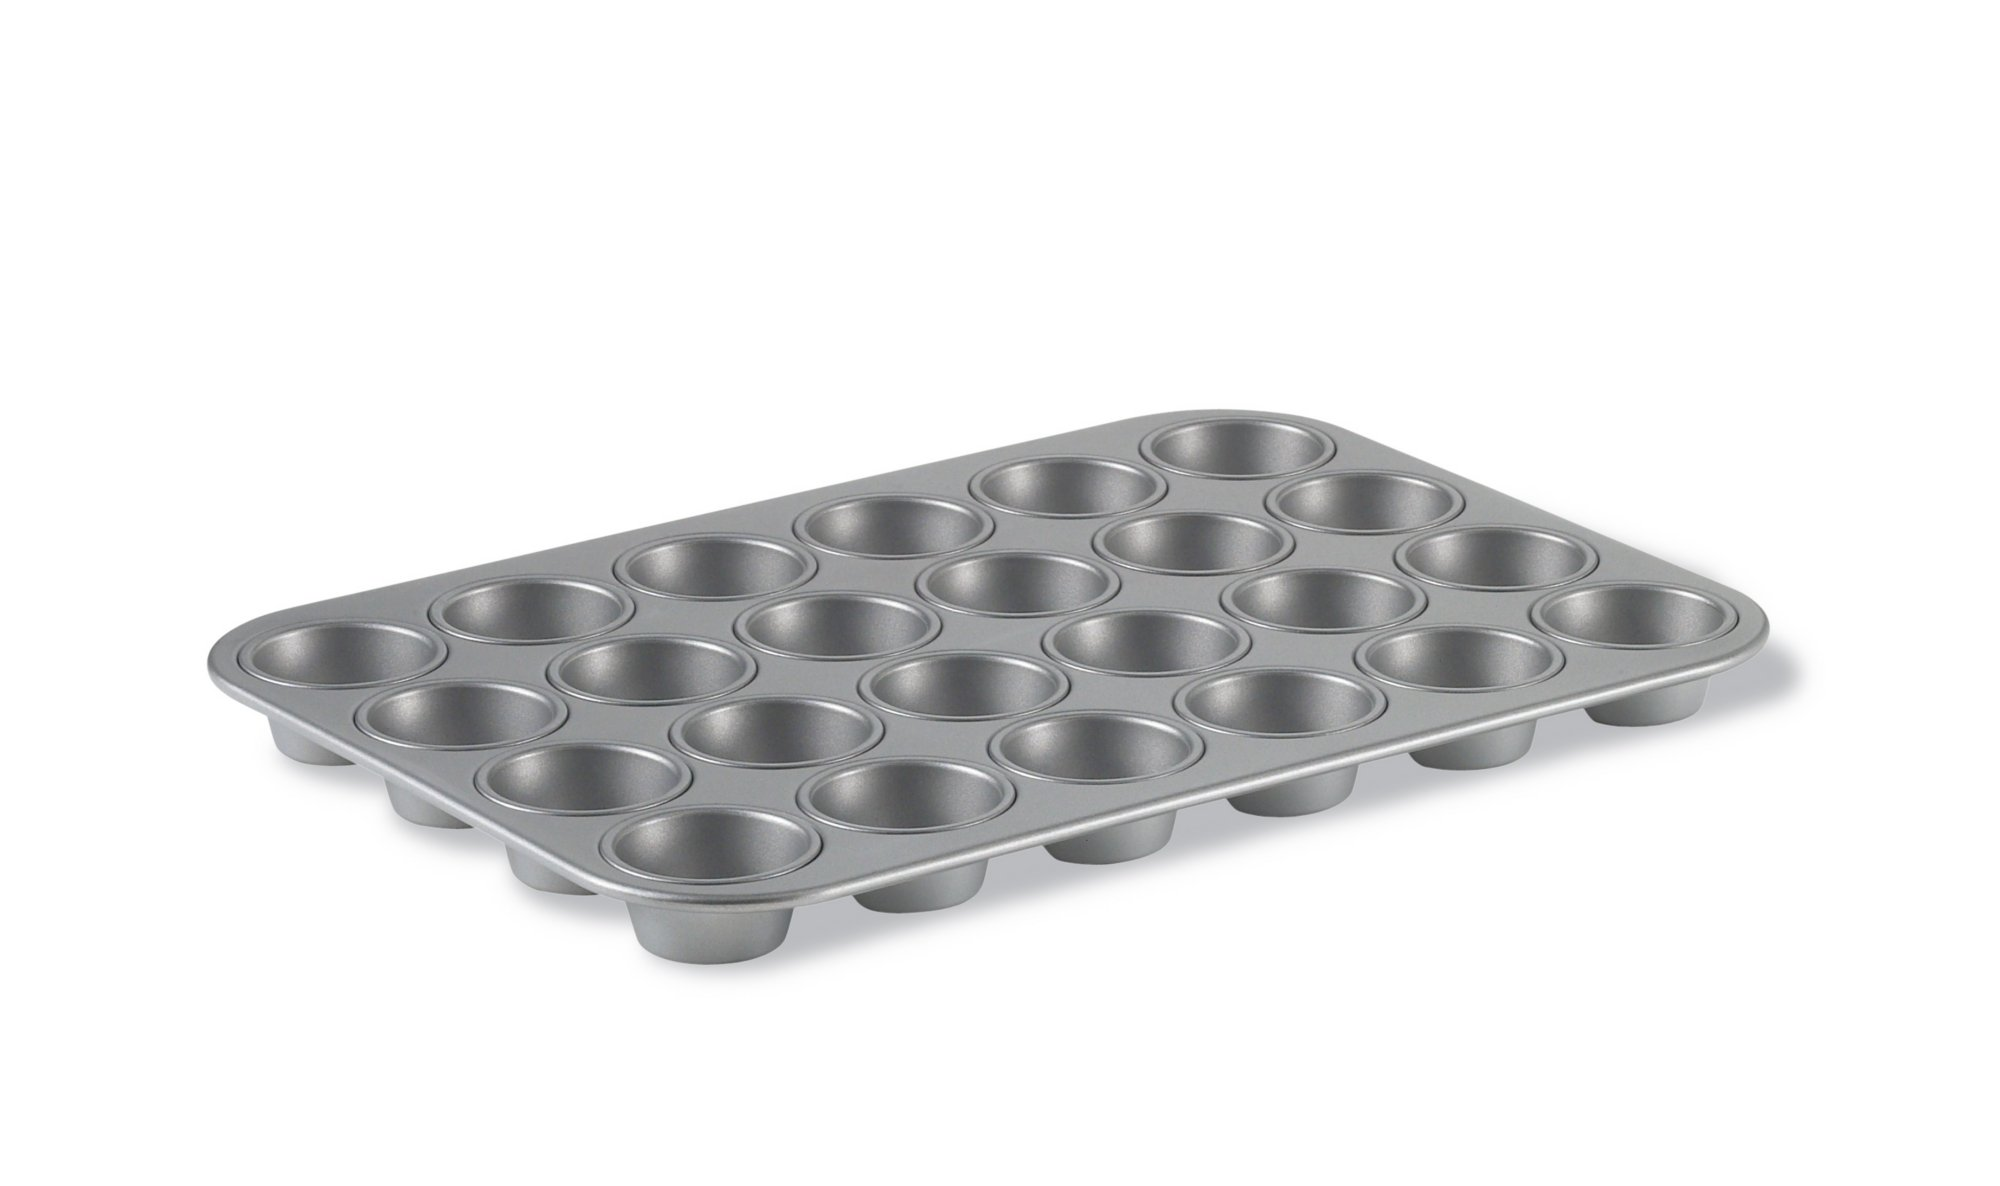 Calphalon Nonstick Bakeware 24 Cup Mini Muffin Pan